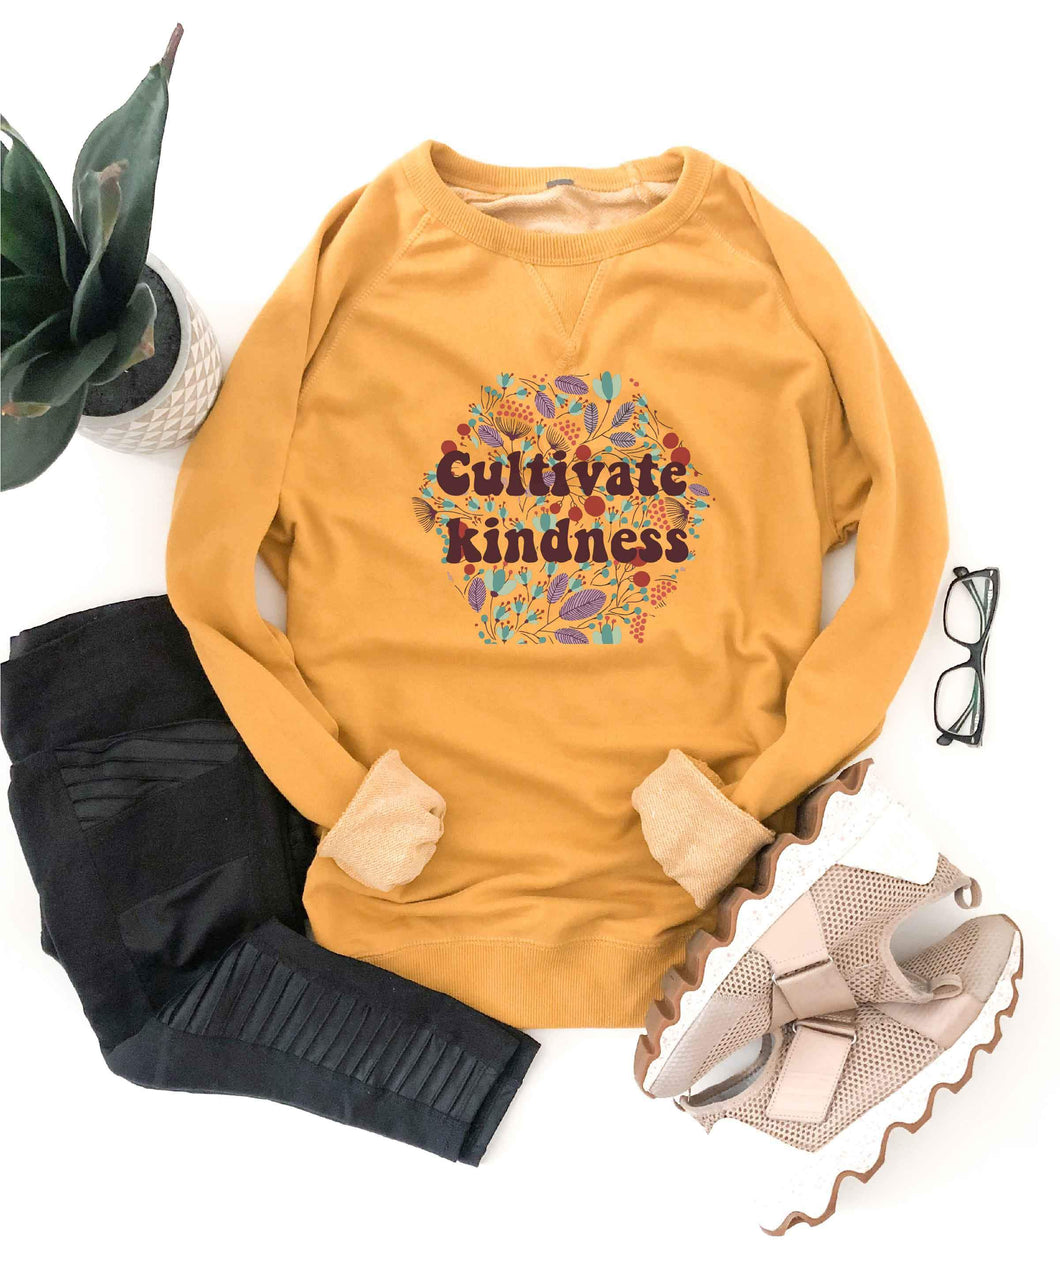 Cultivate kindness french terry raglan Miscellaneous French Terry raglan Cotton heritage French Terry raglan